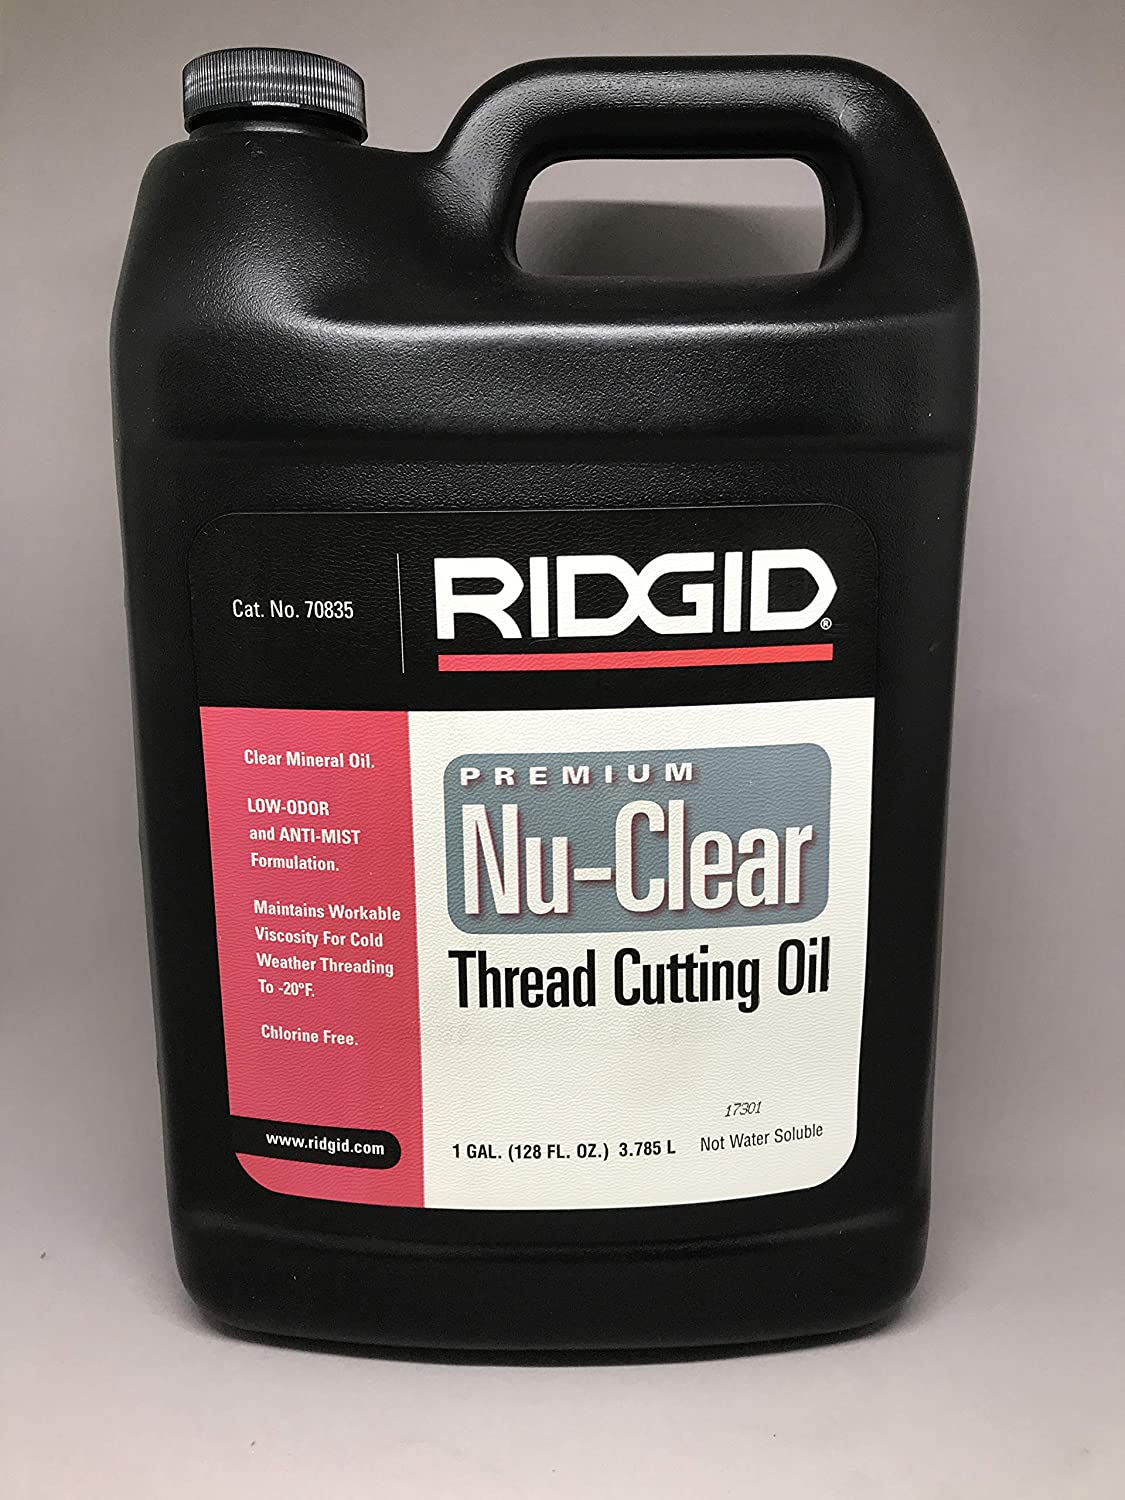 Ridgid 70835 Ridgid Thread Cutting Oil Nu-Clear 1 gal